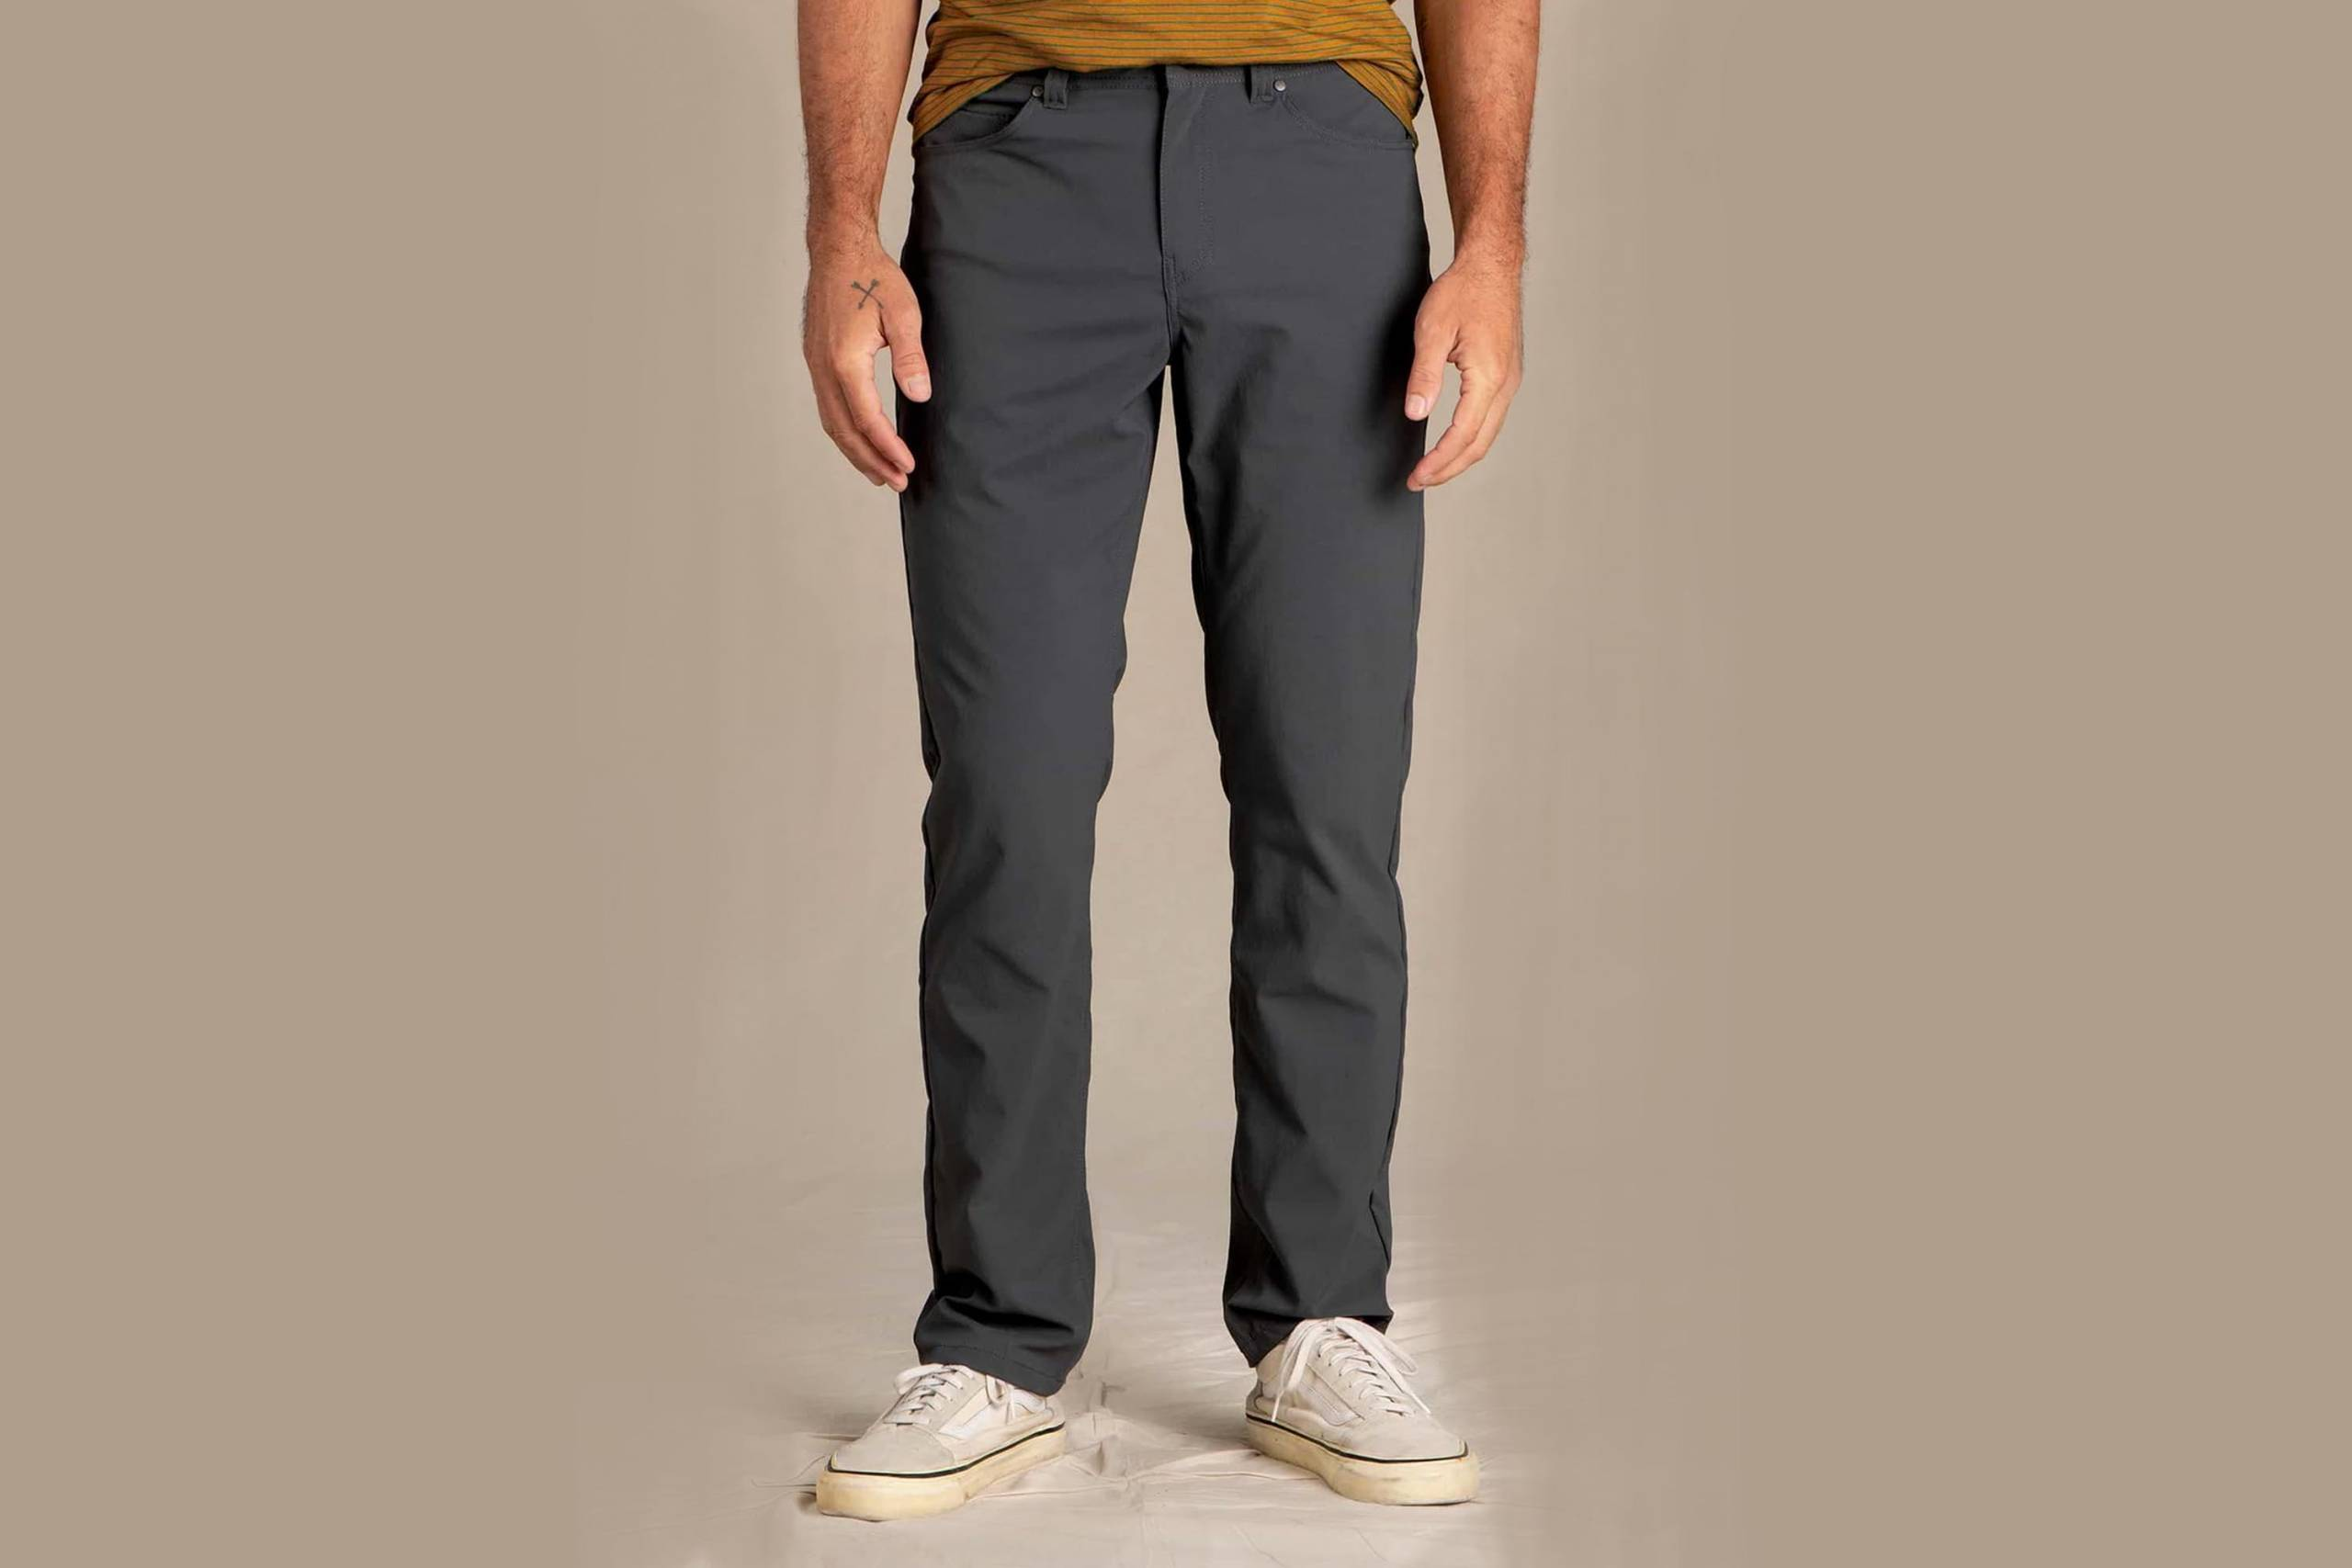 toad&co 5 pocket rover pant